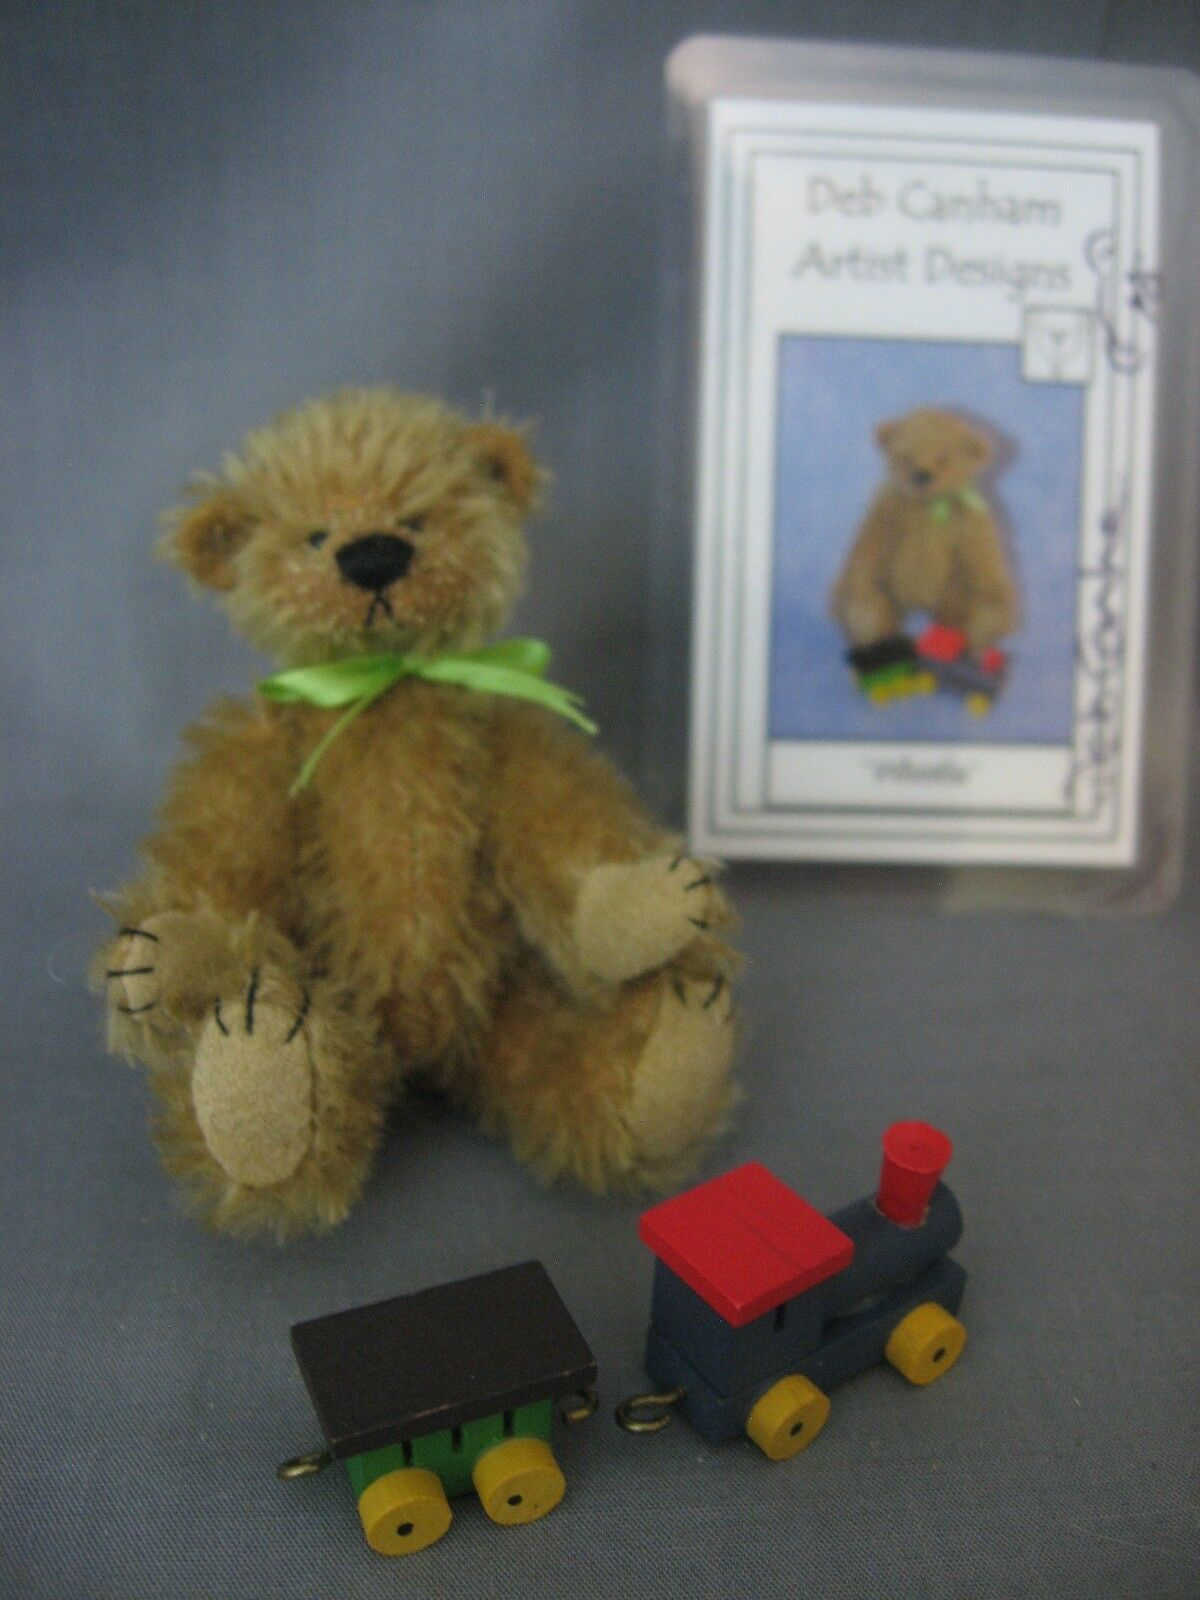 DEB CANHAM - WHISTLE - 2011 - LIMITED EDITION -  93 100- BEAR WITH TRAIN